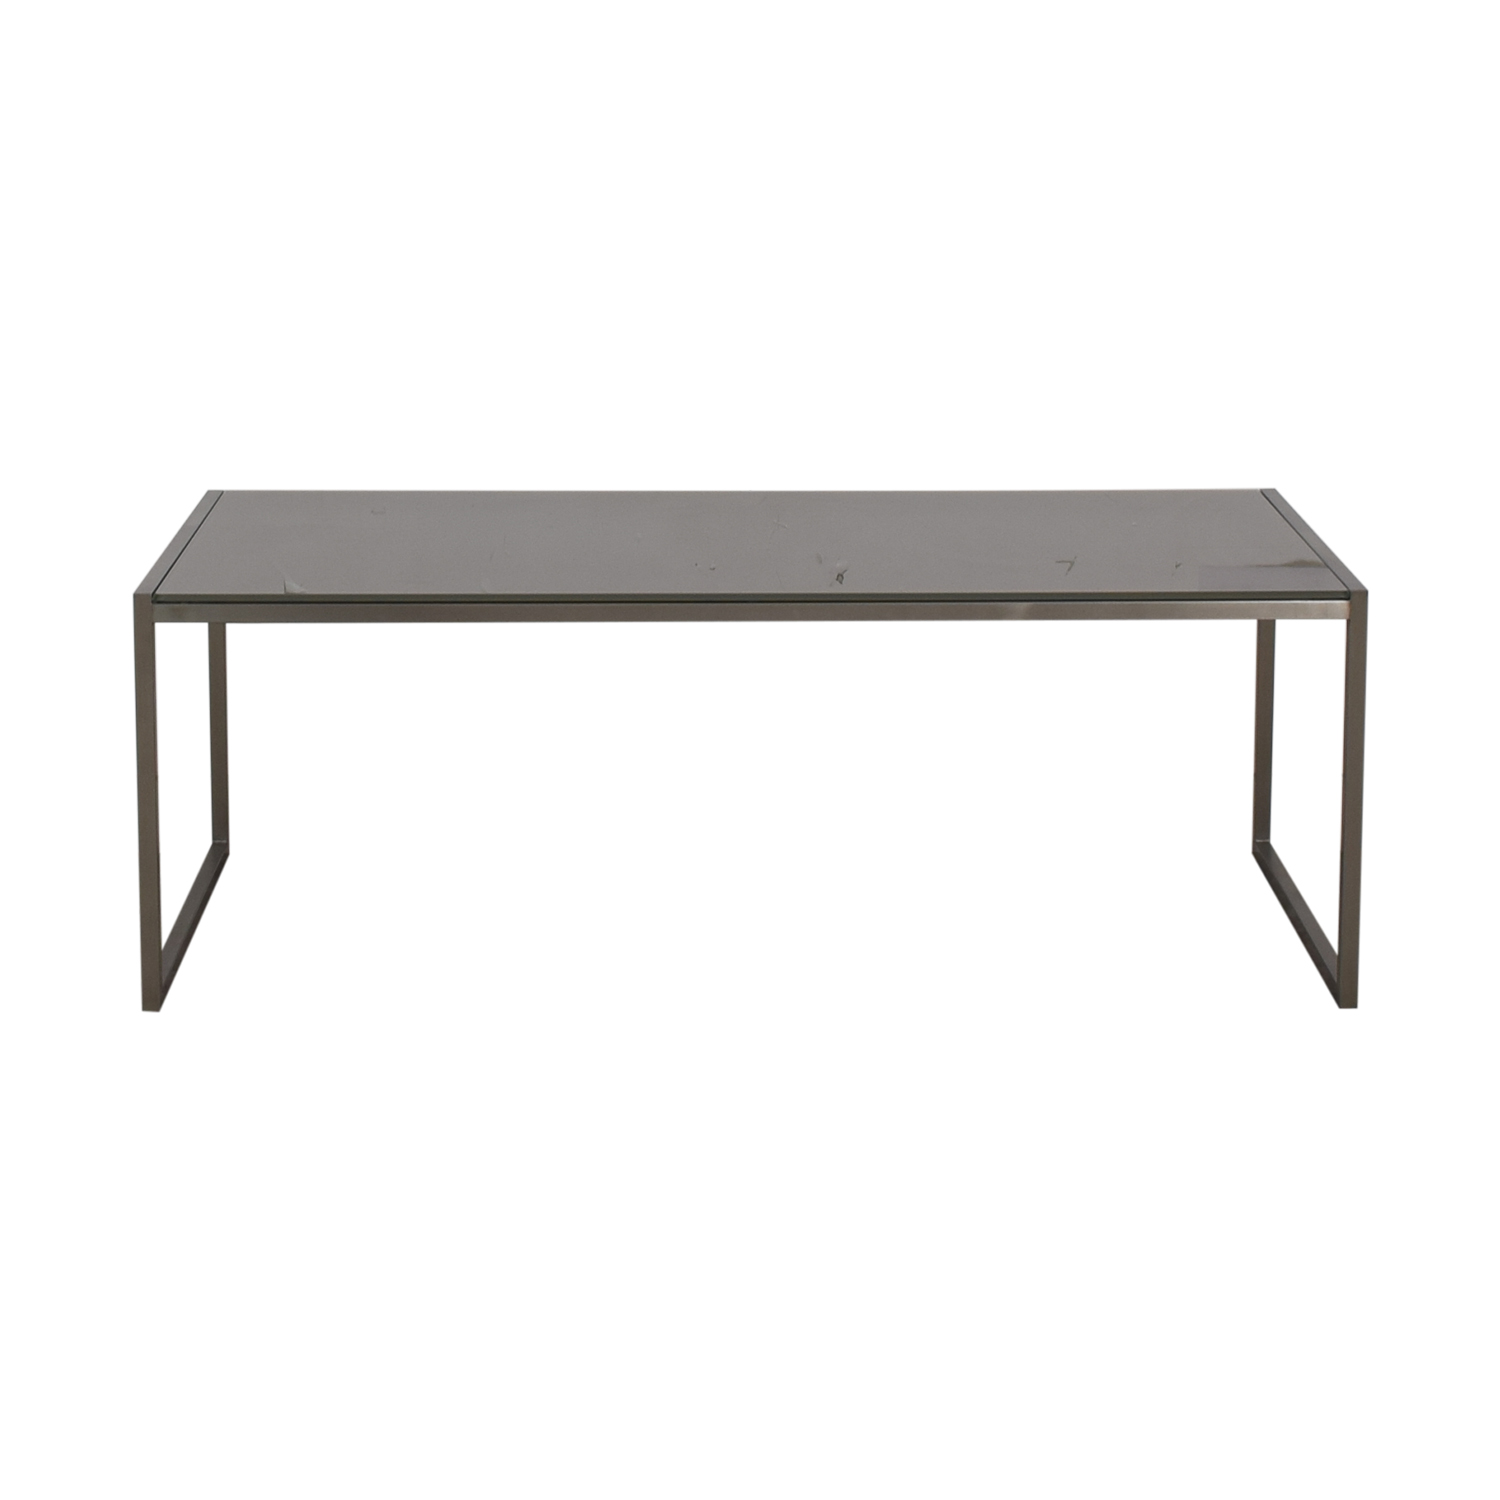 Crate & Barrel Crate & Barrel Silver & Chrome Coffee Table on sale